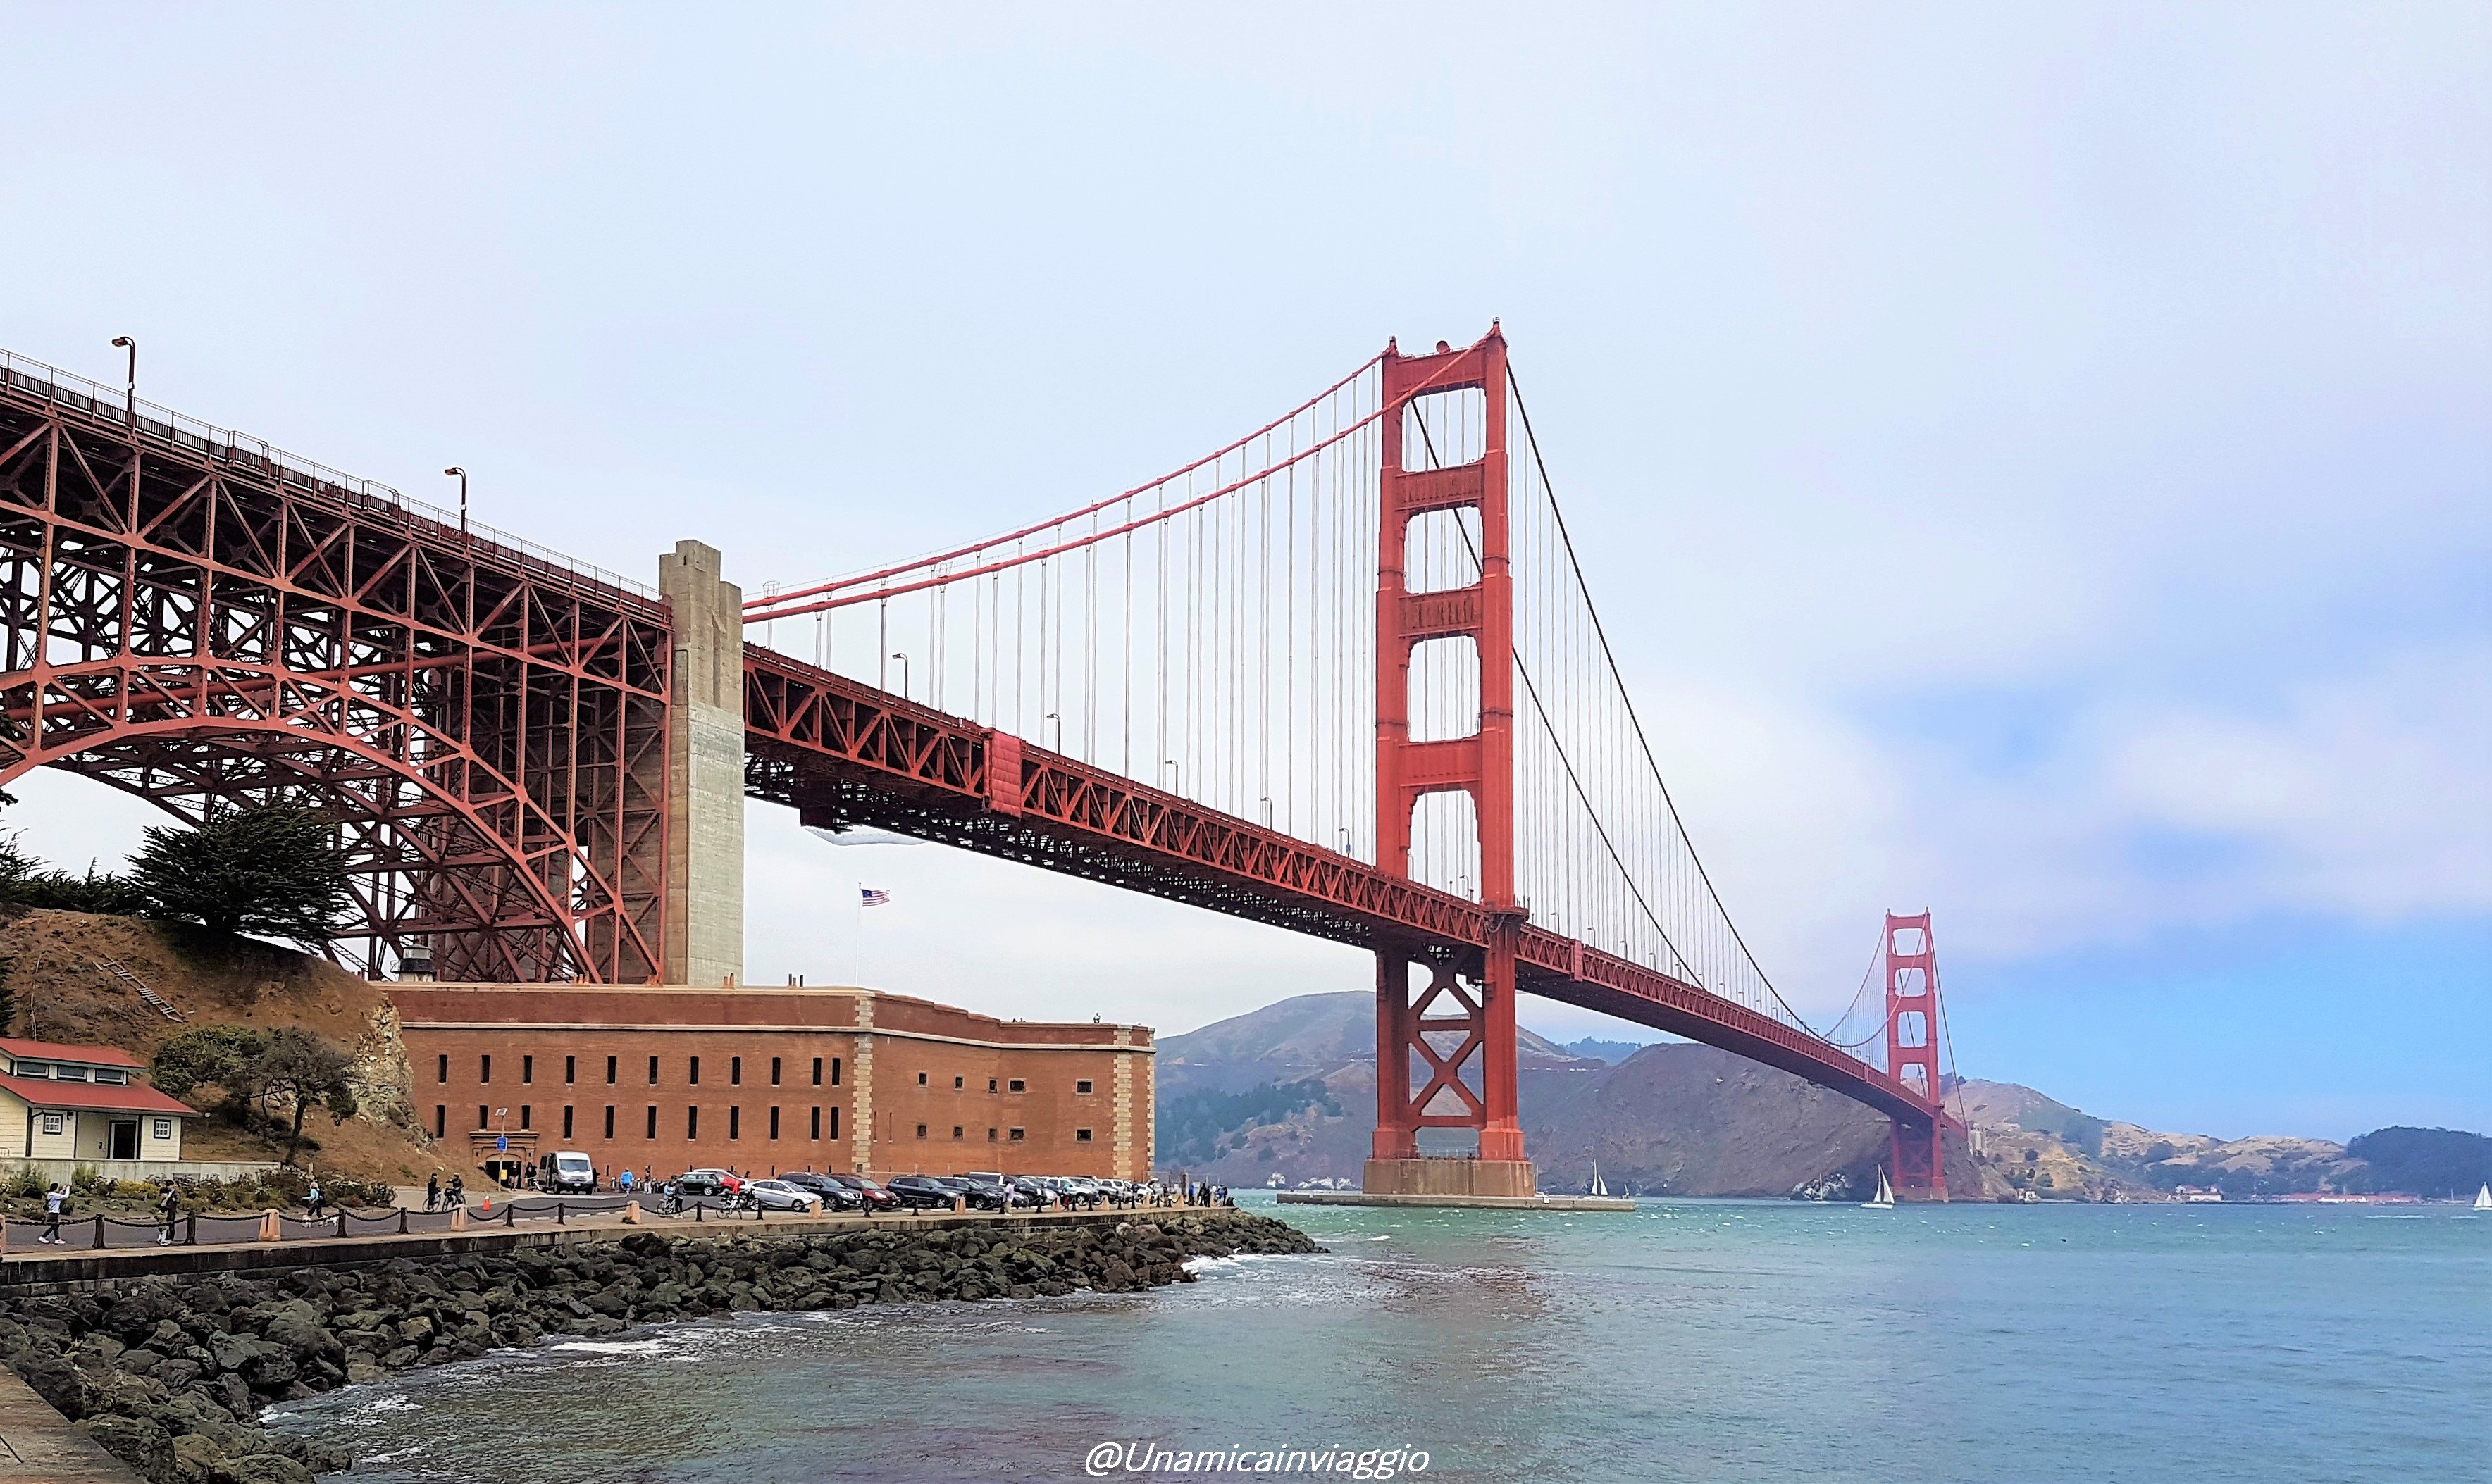 da dove vedere il golden gate bridge a san francisco